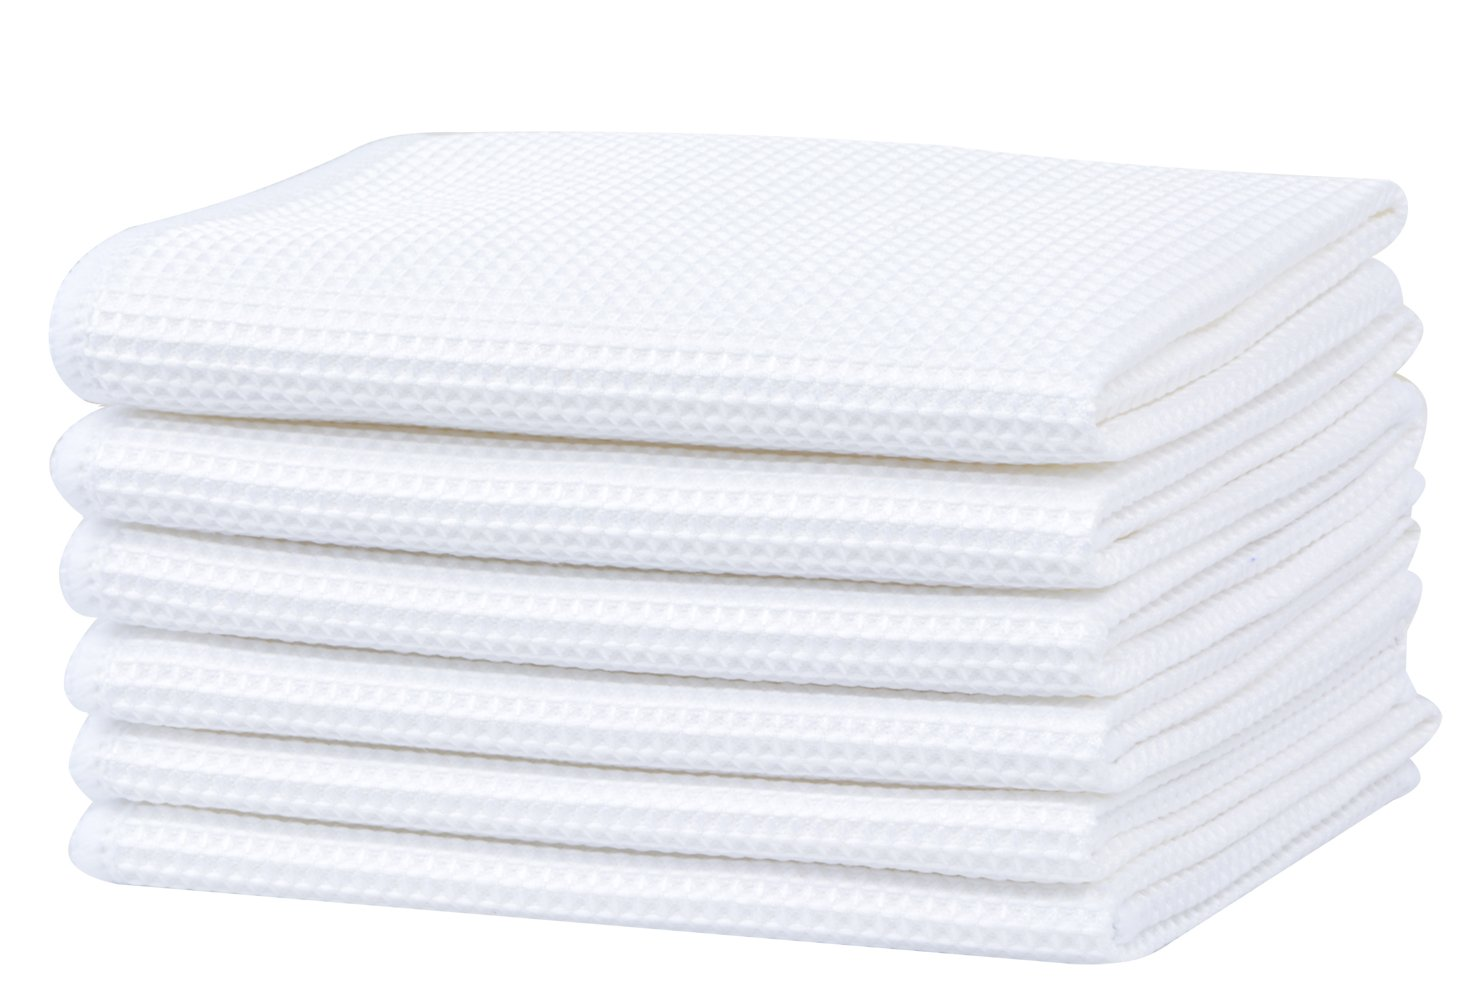 Deep Waffle Weave Dish Cloths White Kitchen Dish Rags for Washing Dishes Microfiber Lint Free Cleaning Cloth 12InchX12Inch 6 Pack